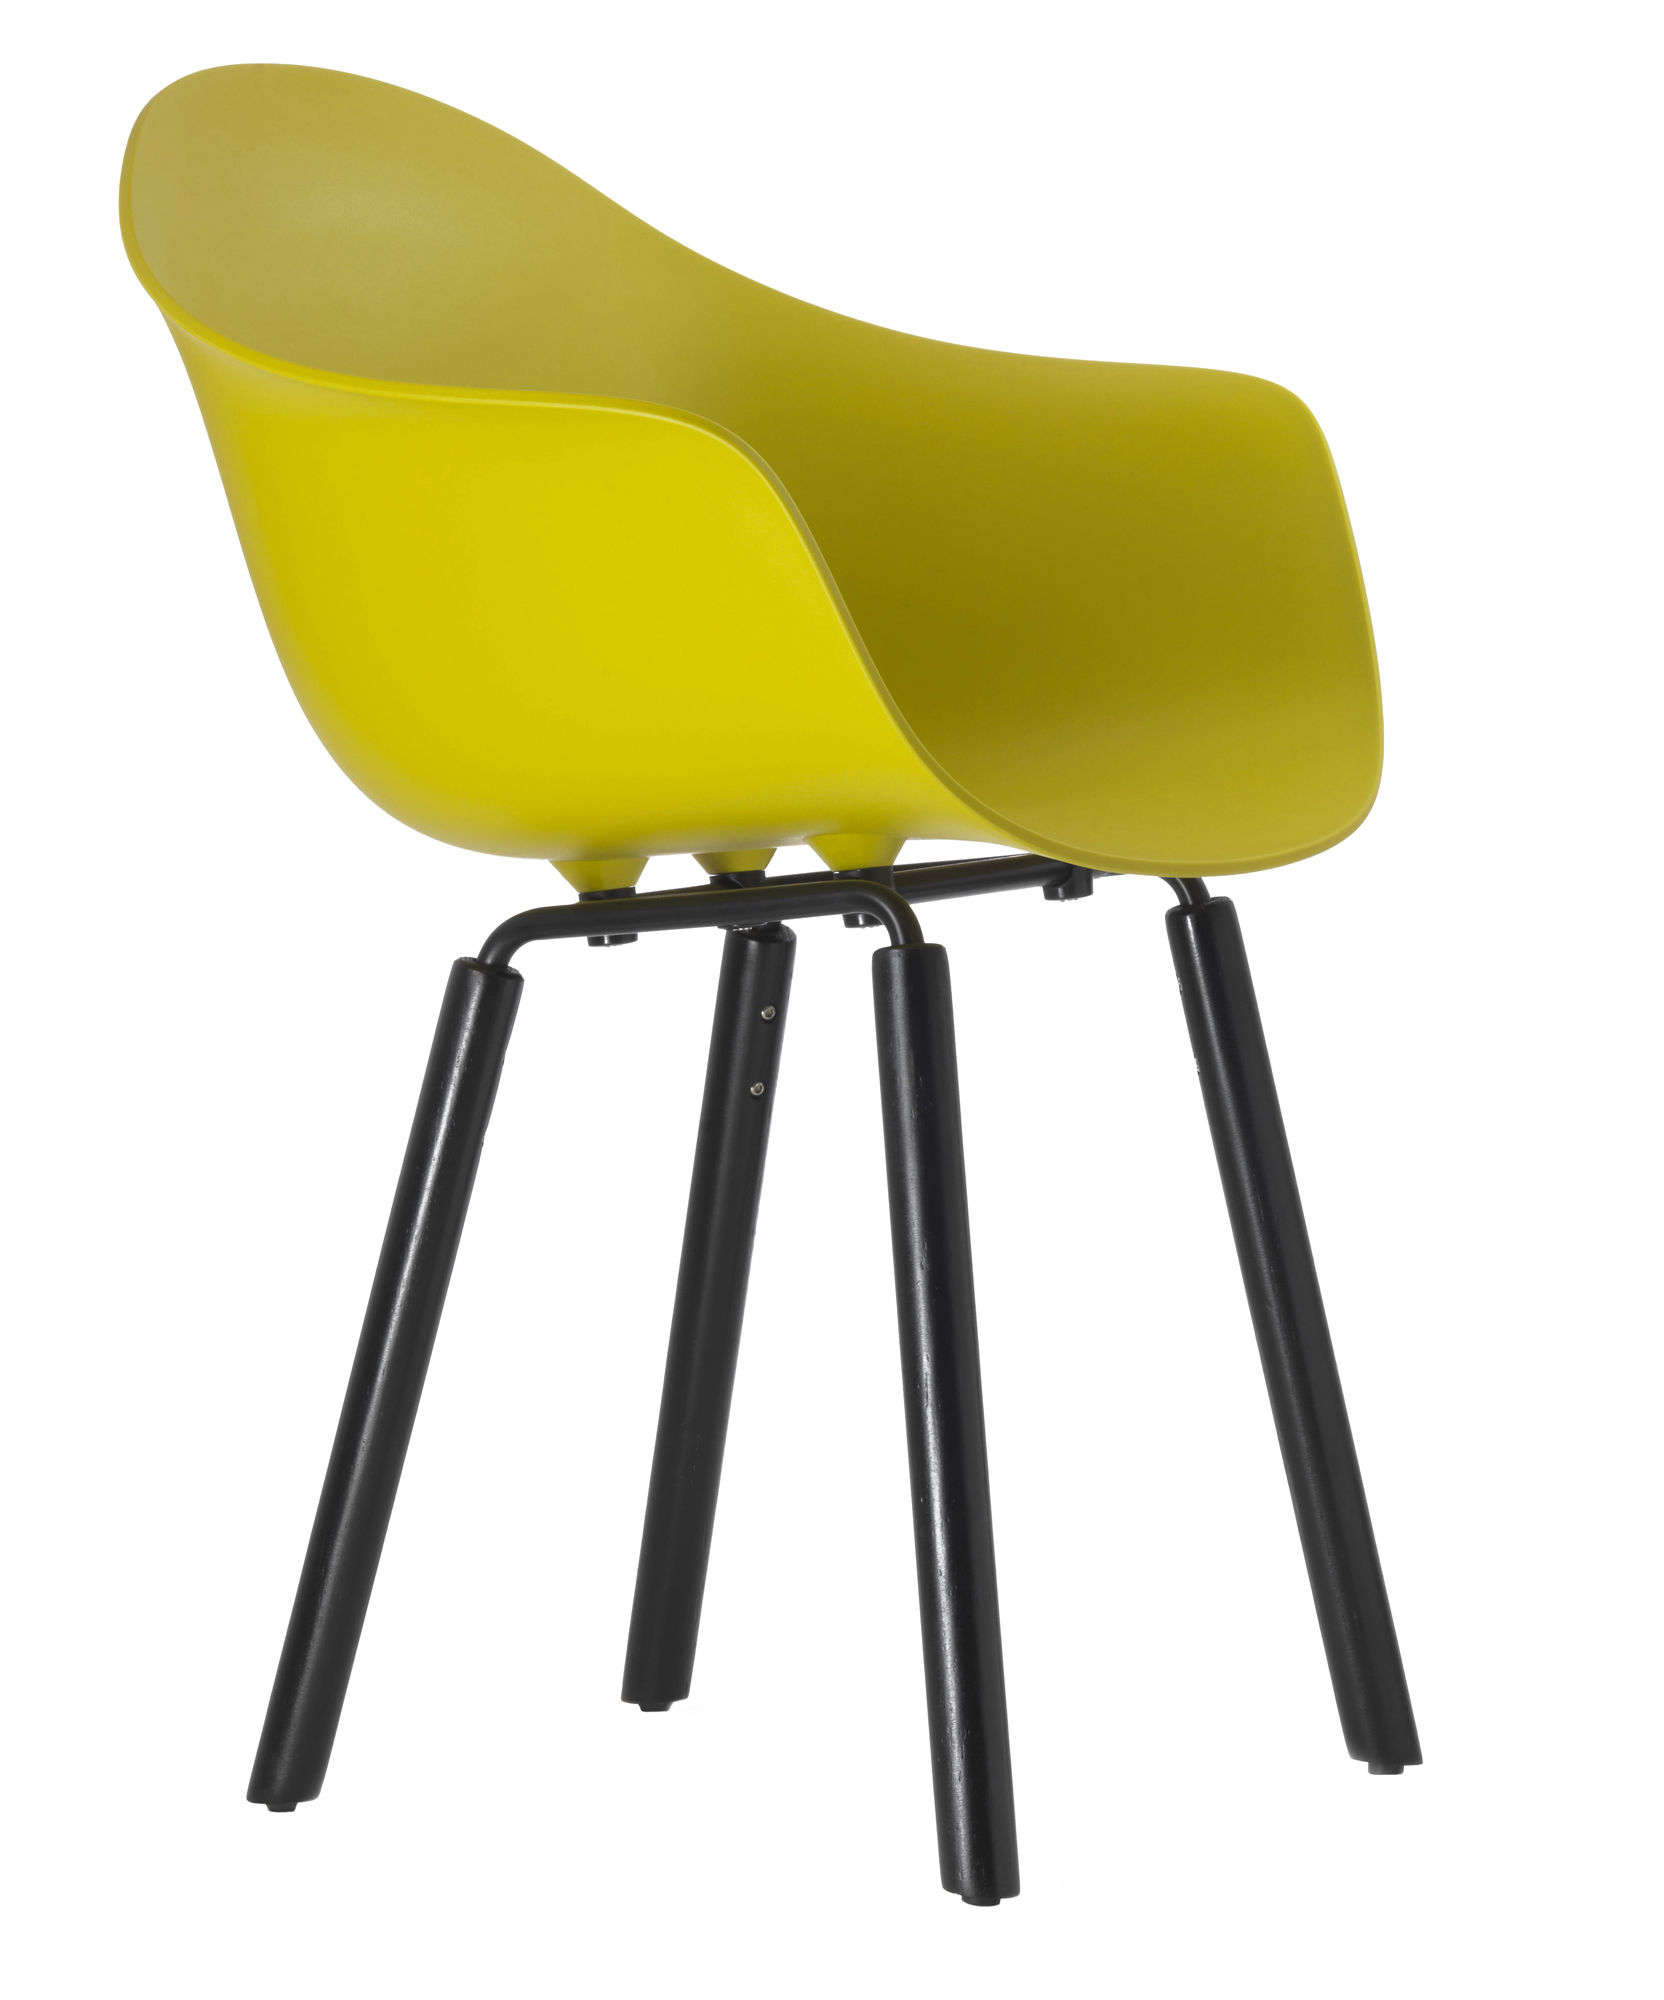 Furniture - Chairs - TA Armchair - Wood legs by Toou - Yellow / Black legs - Lacquered metal, Painted oak, Polypropylene